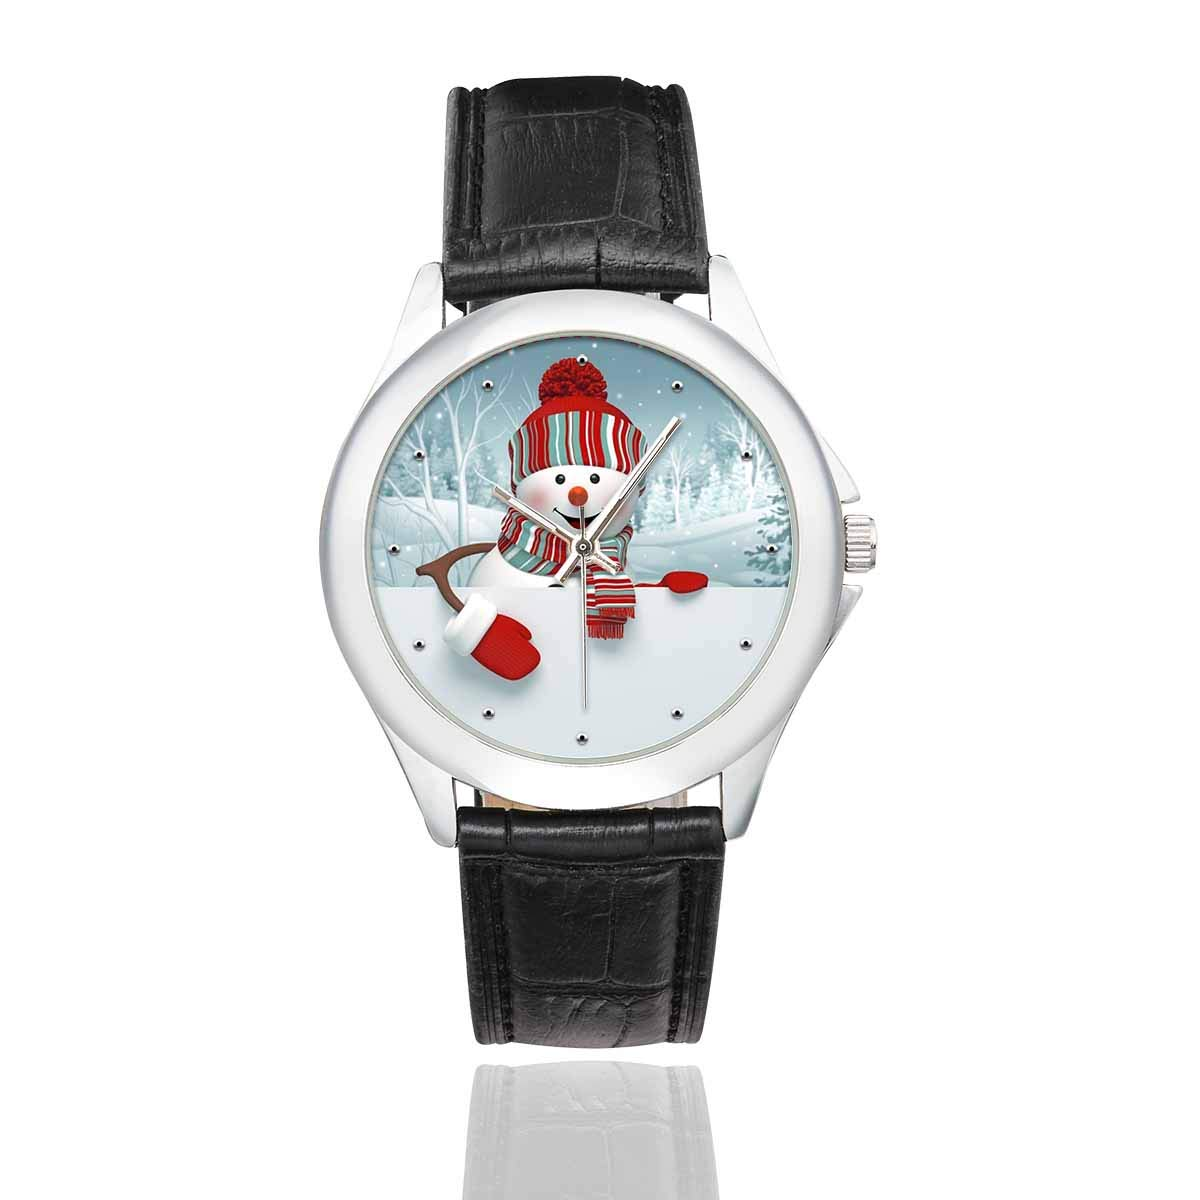 InterestPrint Easter Halloween Thanksgiving Christmas Waterproof Women s Stainless Steel Classic Leather Strap Watches, Black